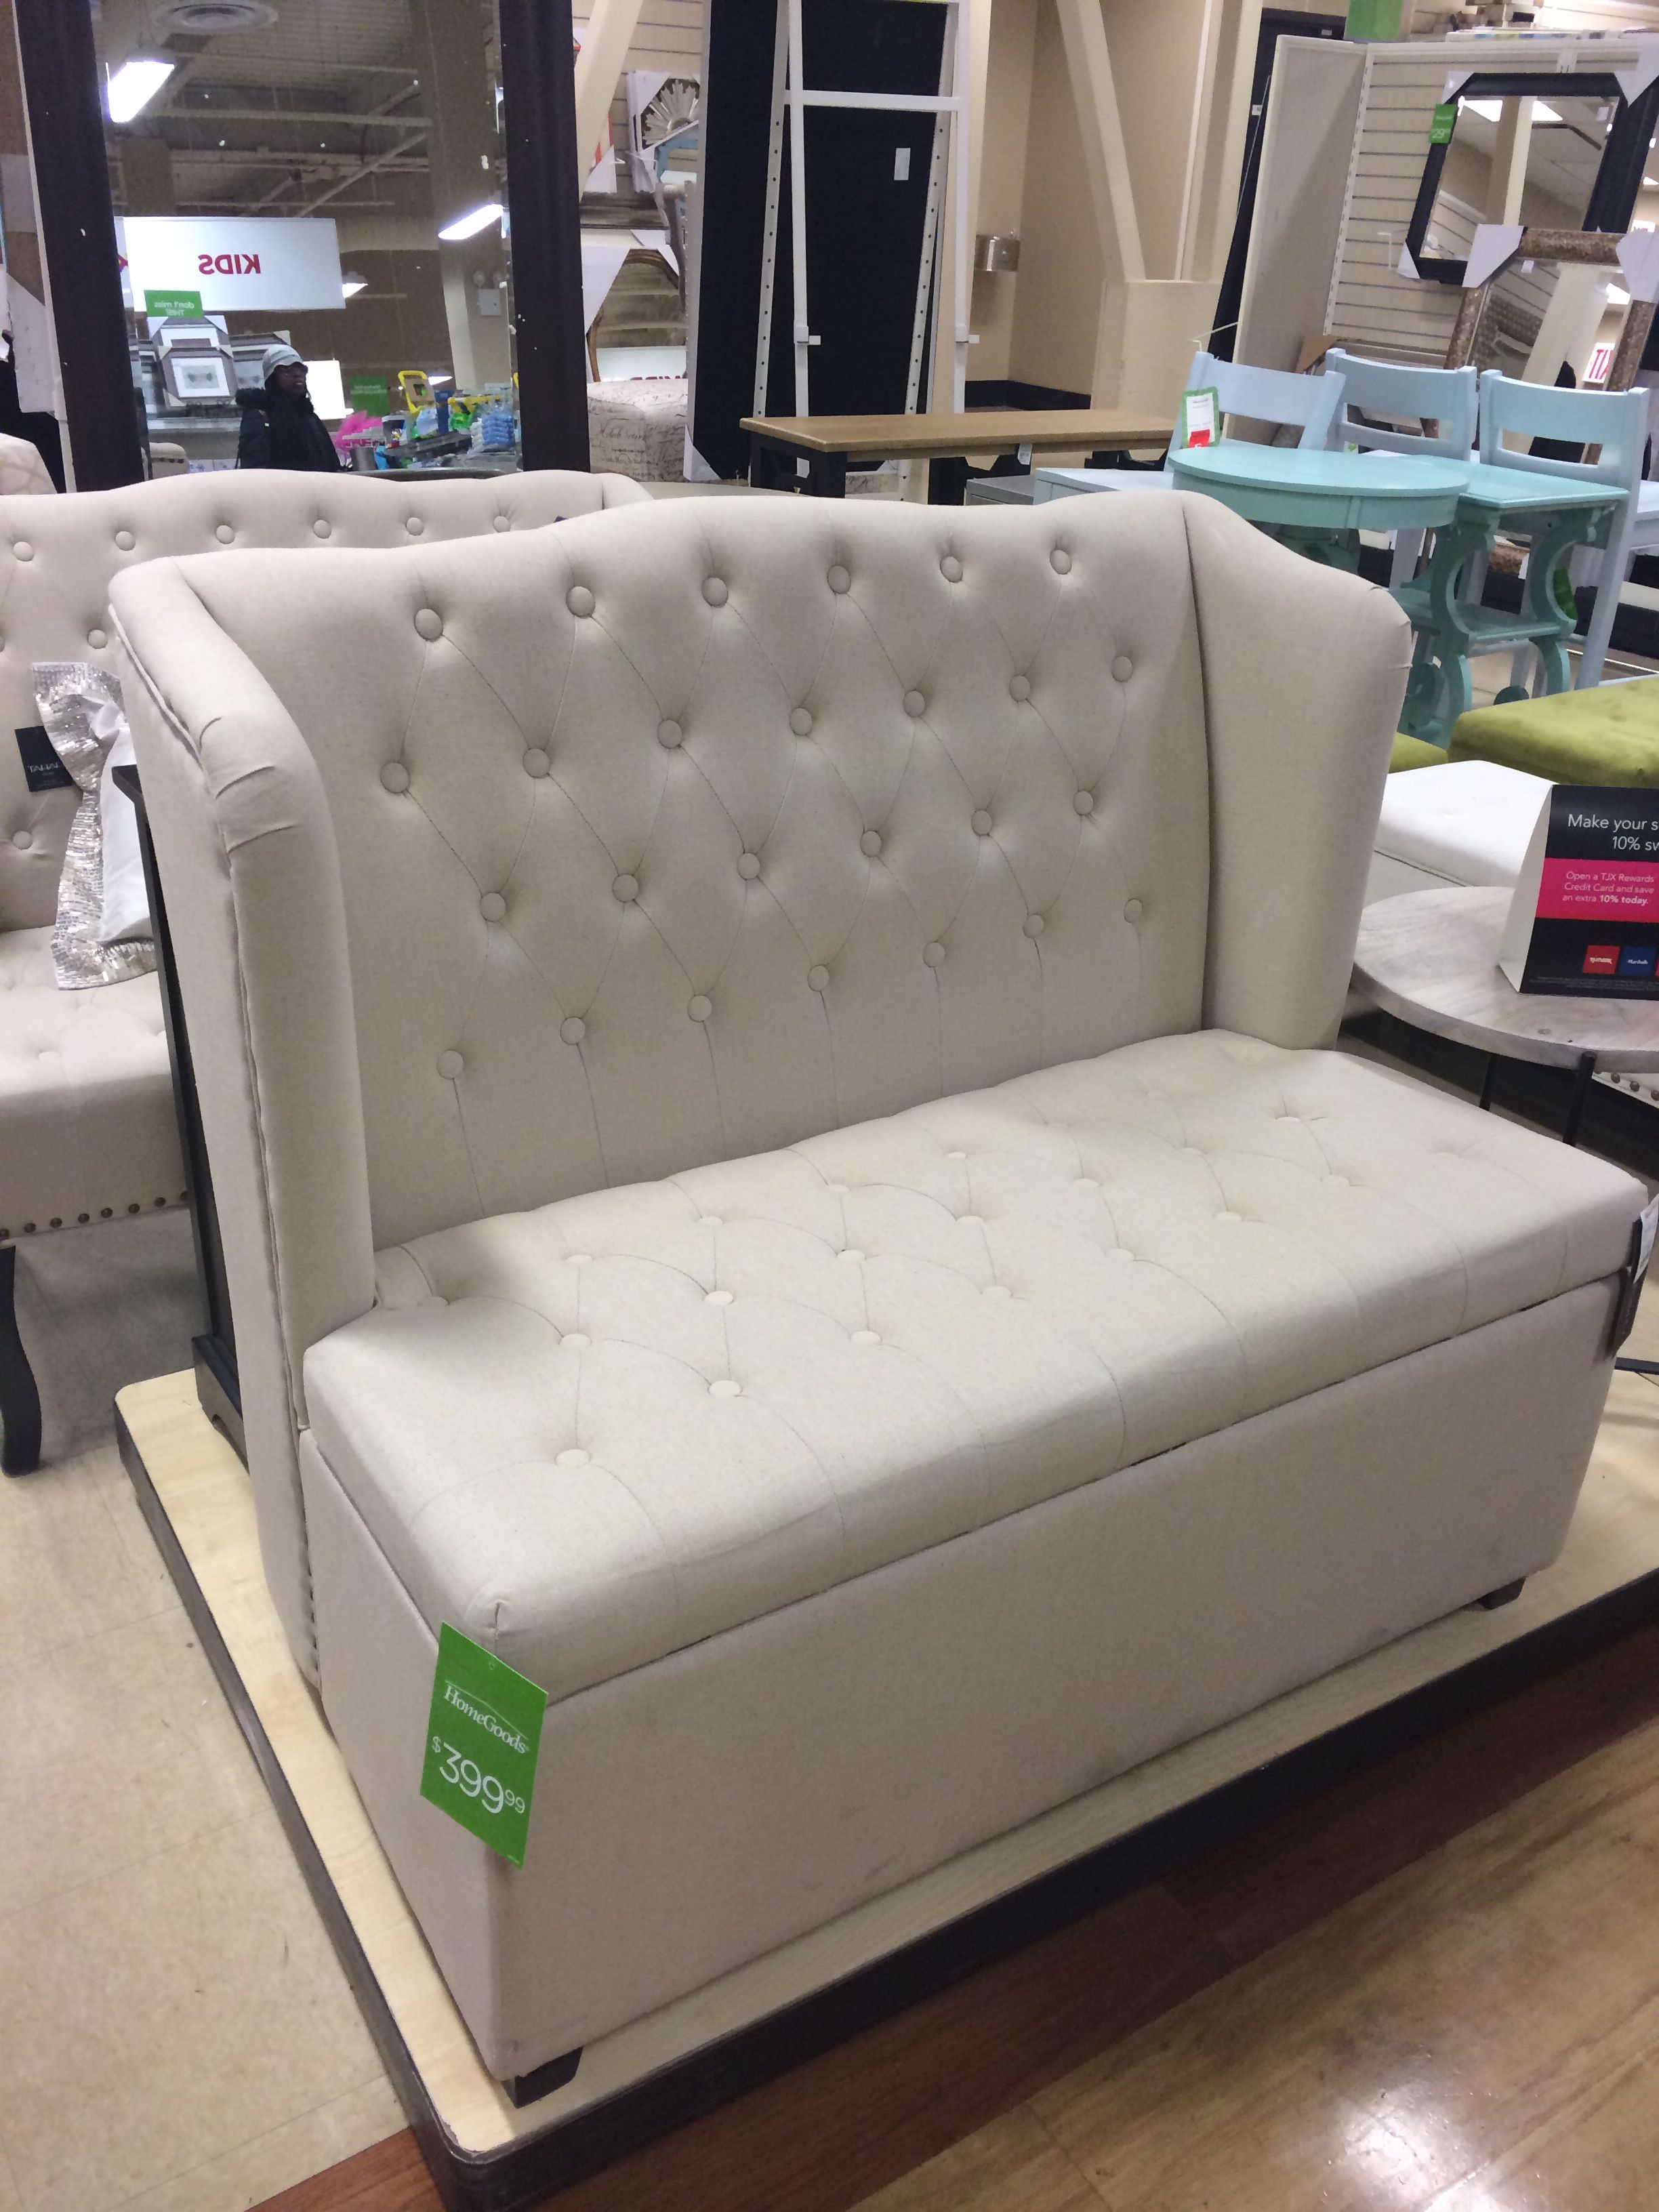 cynthia rowley chairs at marshalls scooter chair store cute sofa in home goods decor